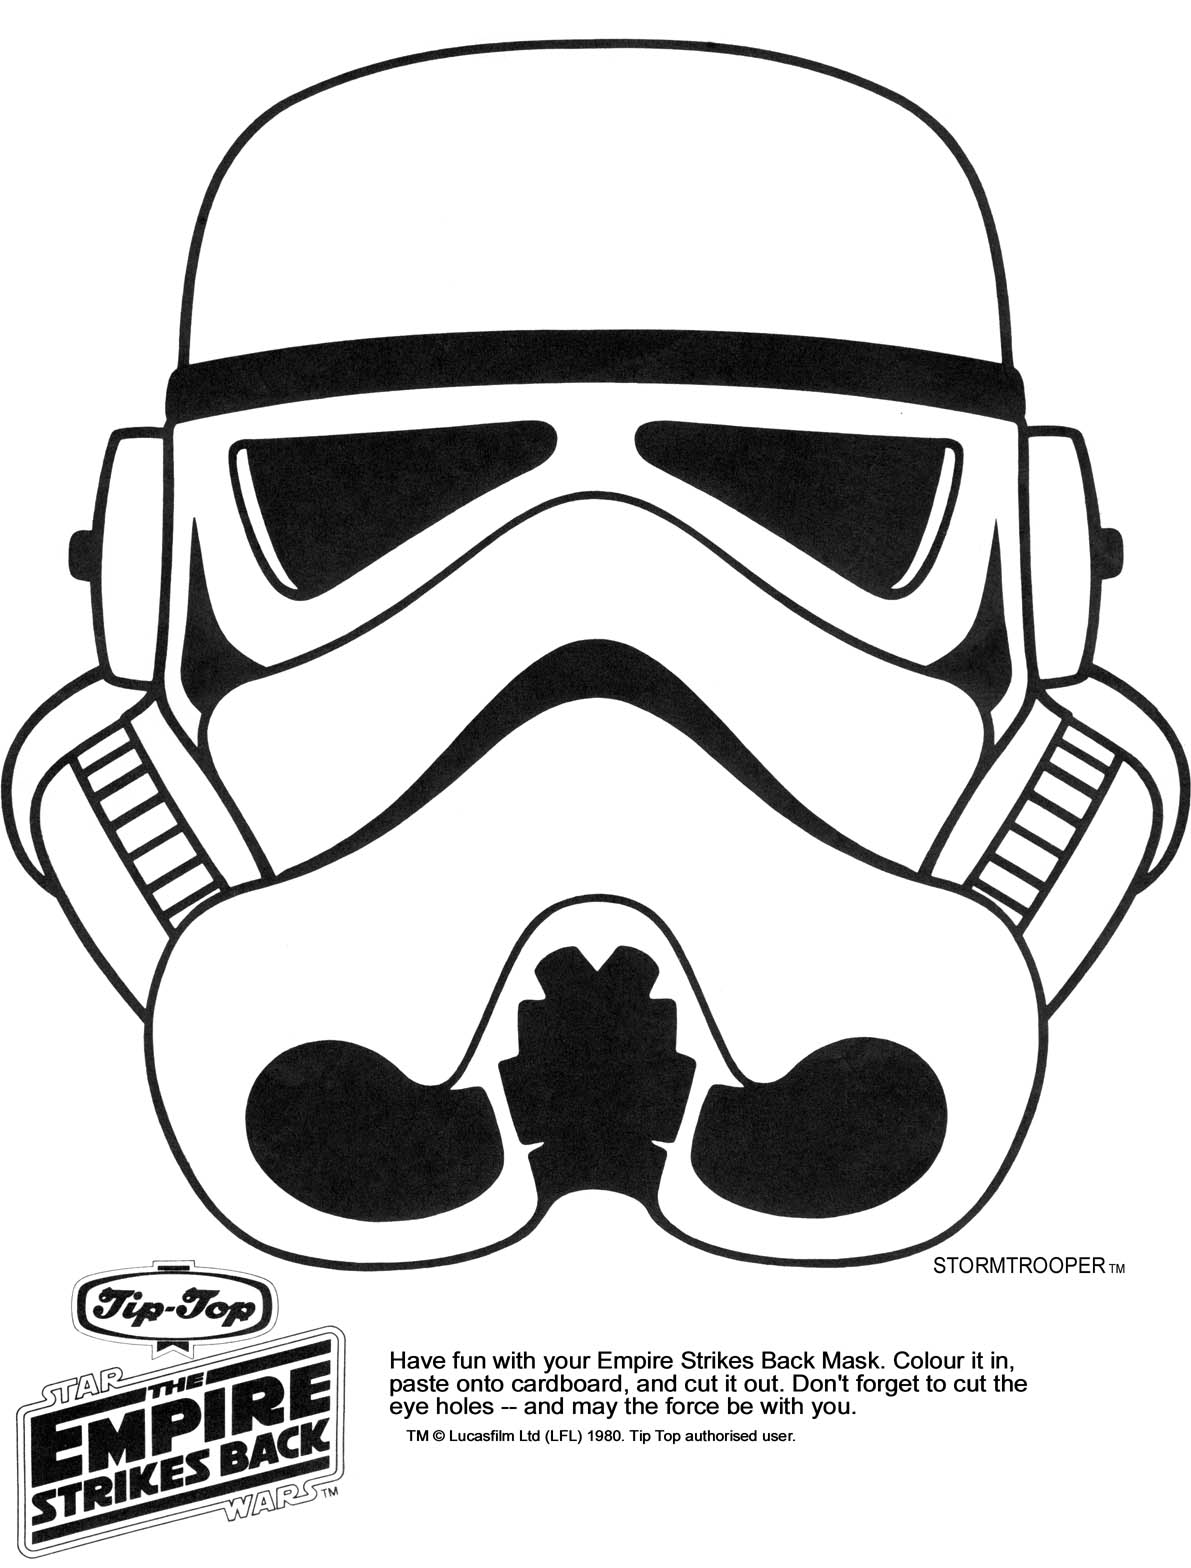 image regarding Star Wars Printable Masks named Ks Star Foundation - Star Wars Printable Masks - Kaplans Web site